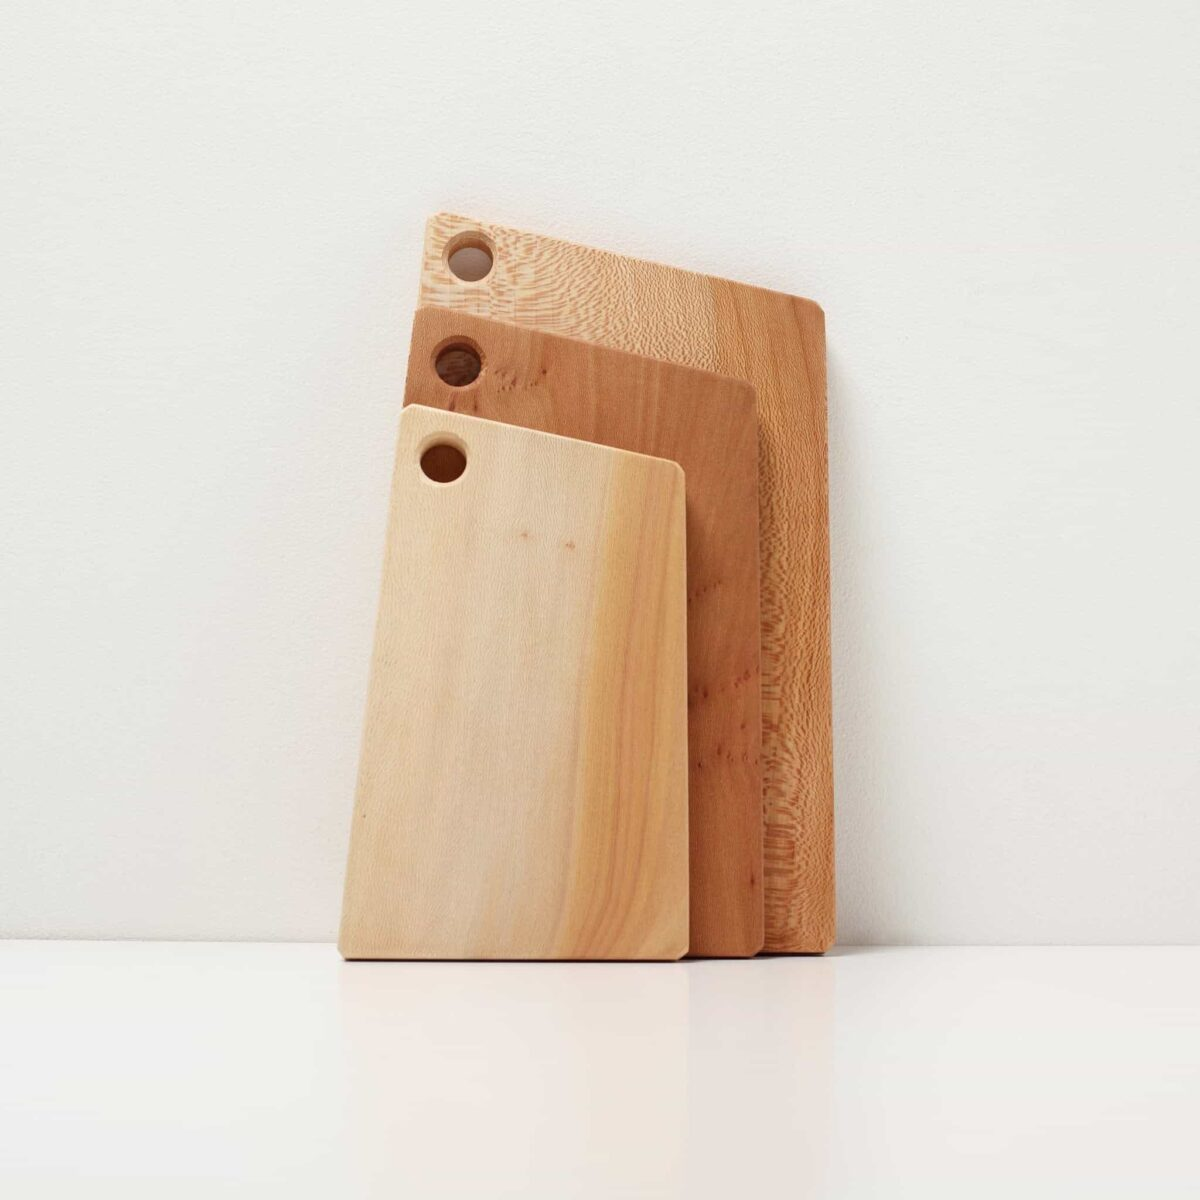 Hampson_Wood_Geometric_Board_001